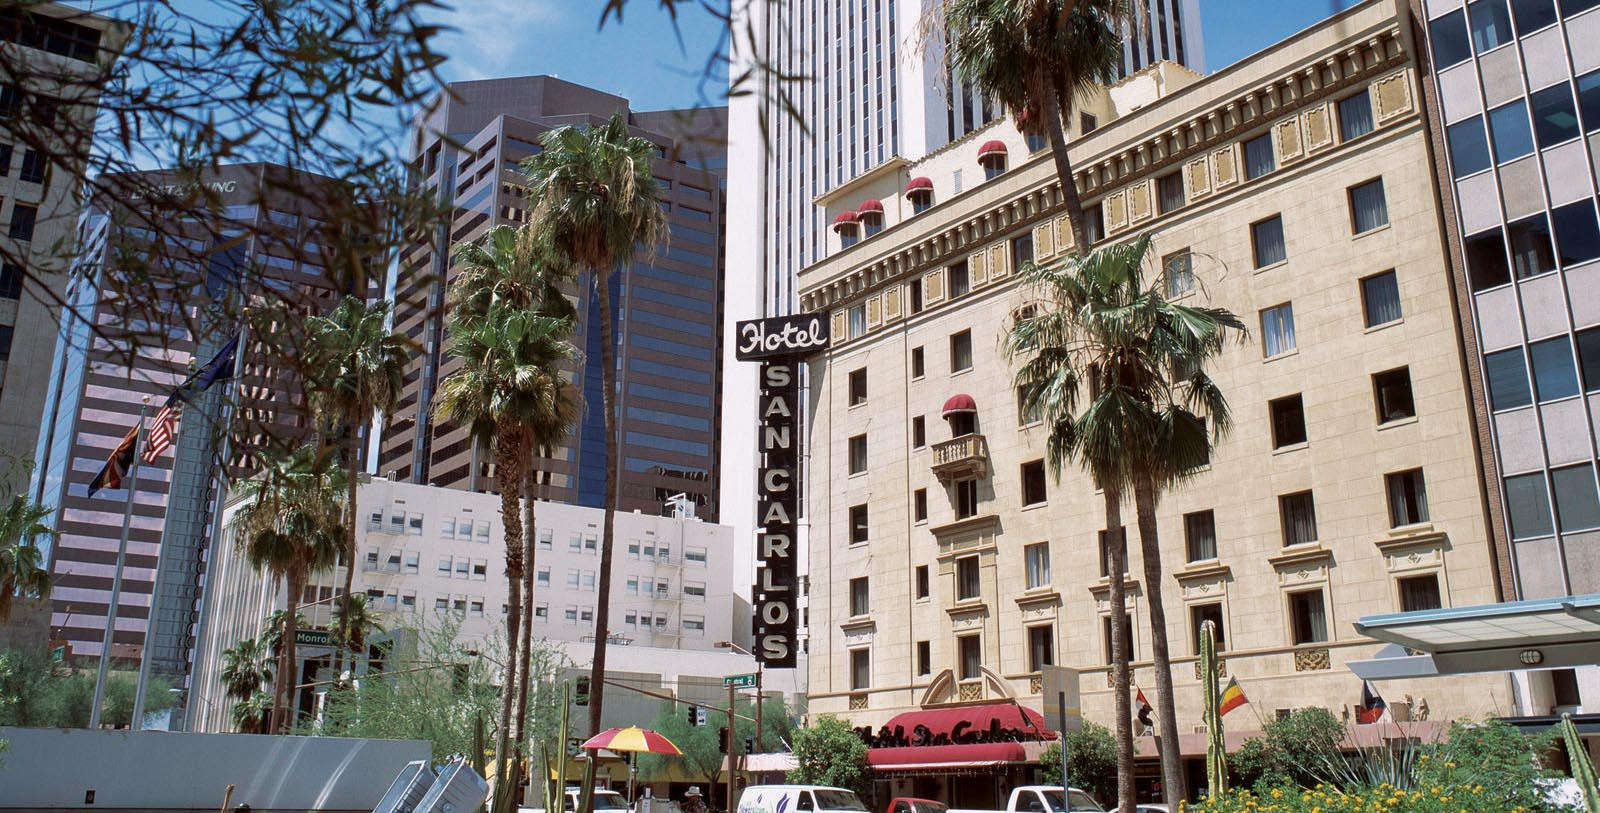 Image of Exterior, Hotel San Carlos in Phoenix Arizona, 1928, Member of Historic Hotels of America, Special Offers, Discounted Rates, Families, Romantic Escape, Honeymoons, Anniversaries, Reunions